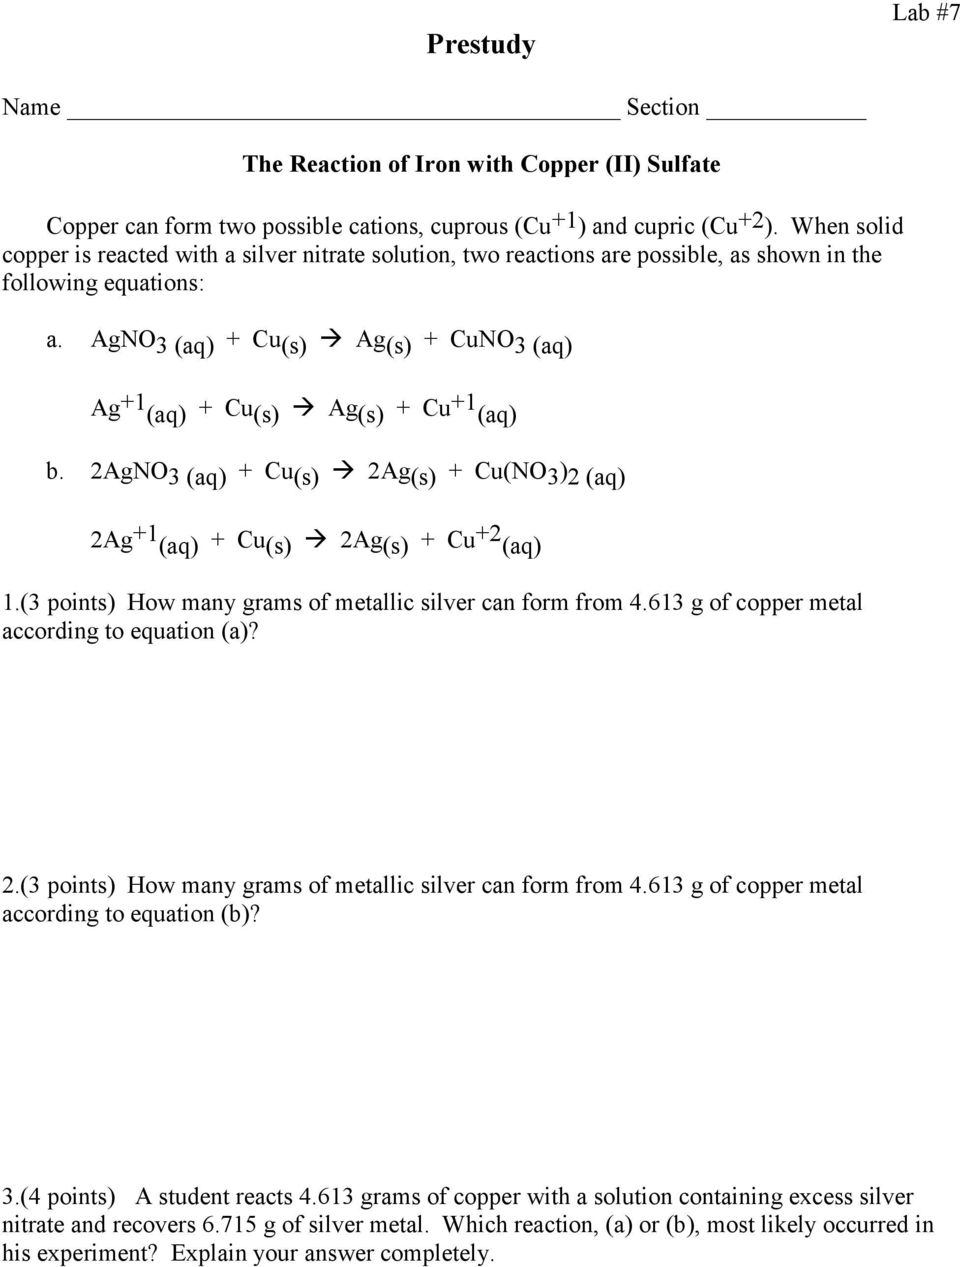 STOICHIOMETRY: The Reaction of Iron with Copper (II) Sulfate - PDF